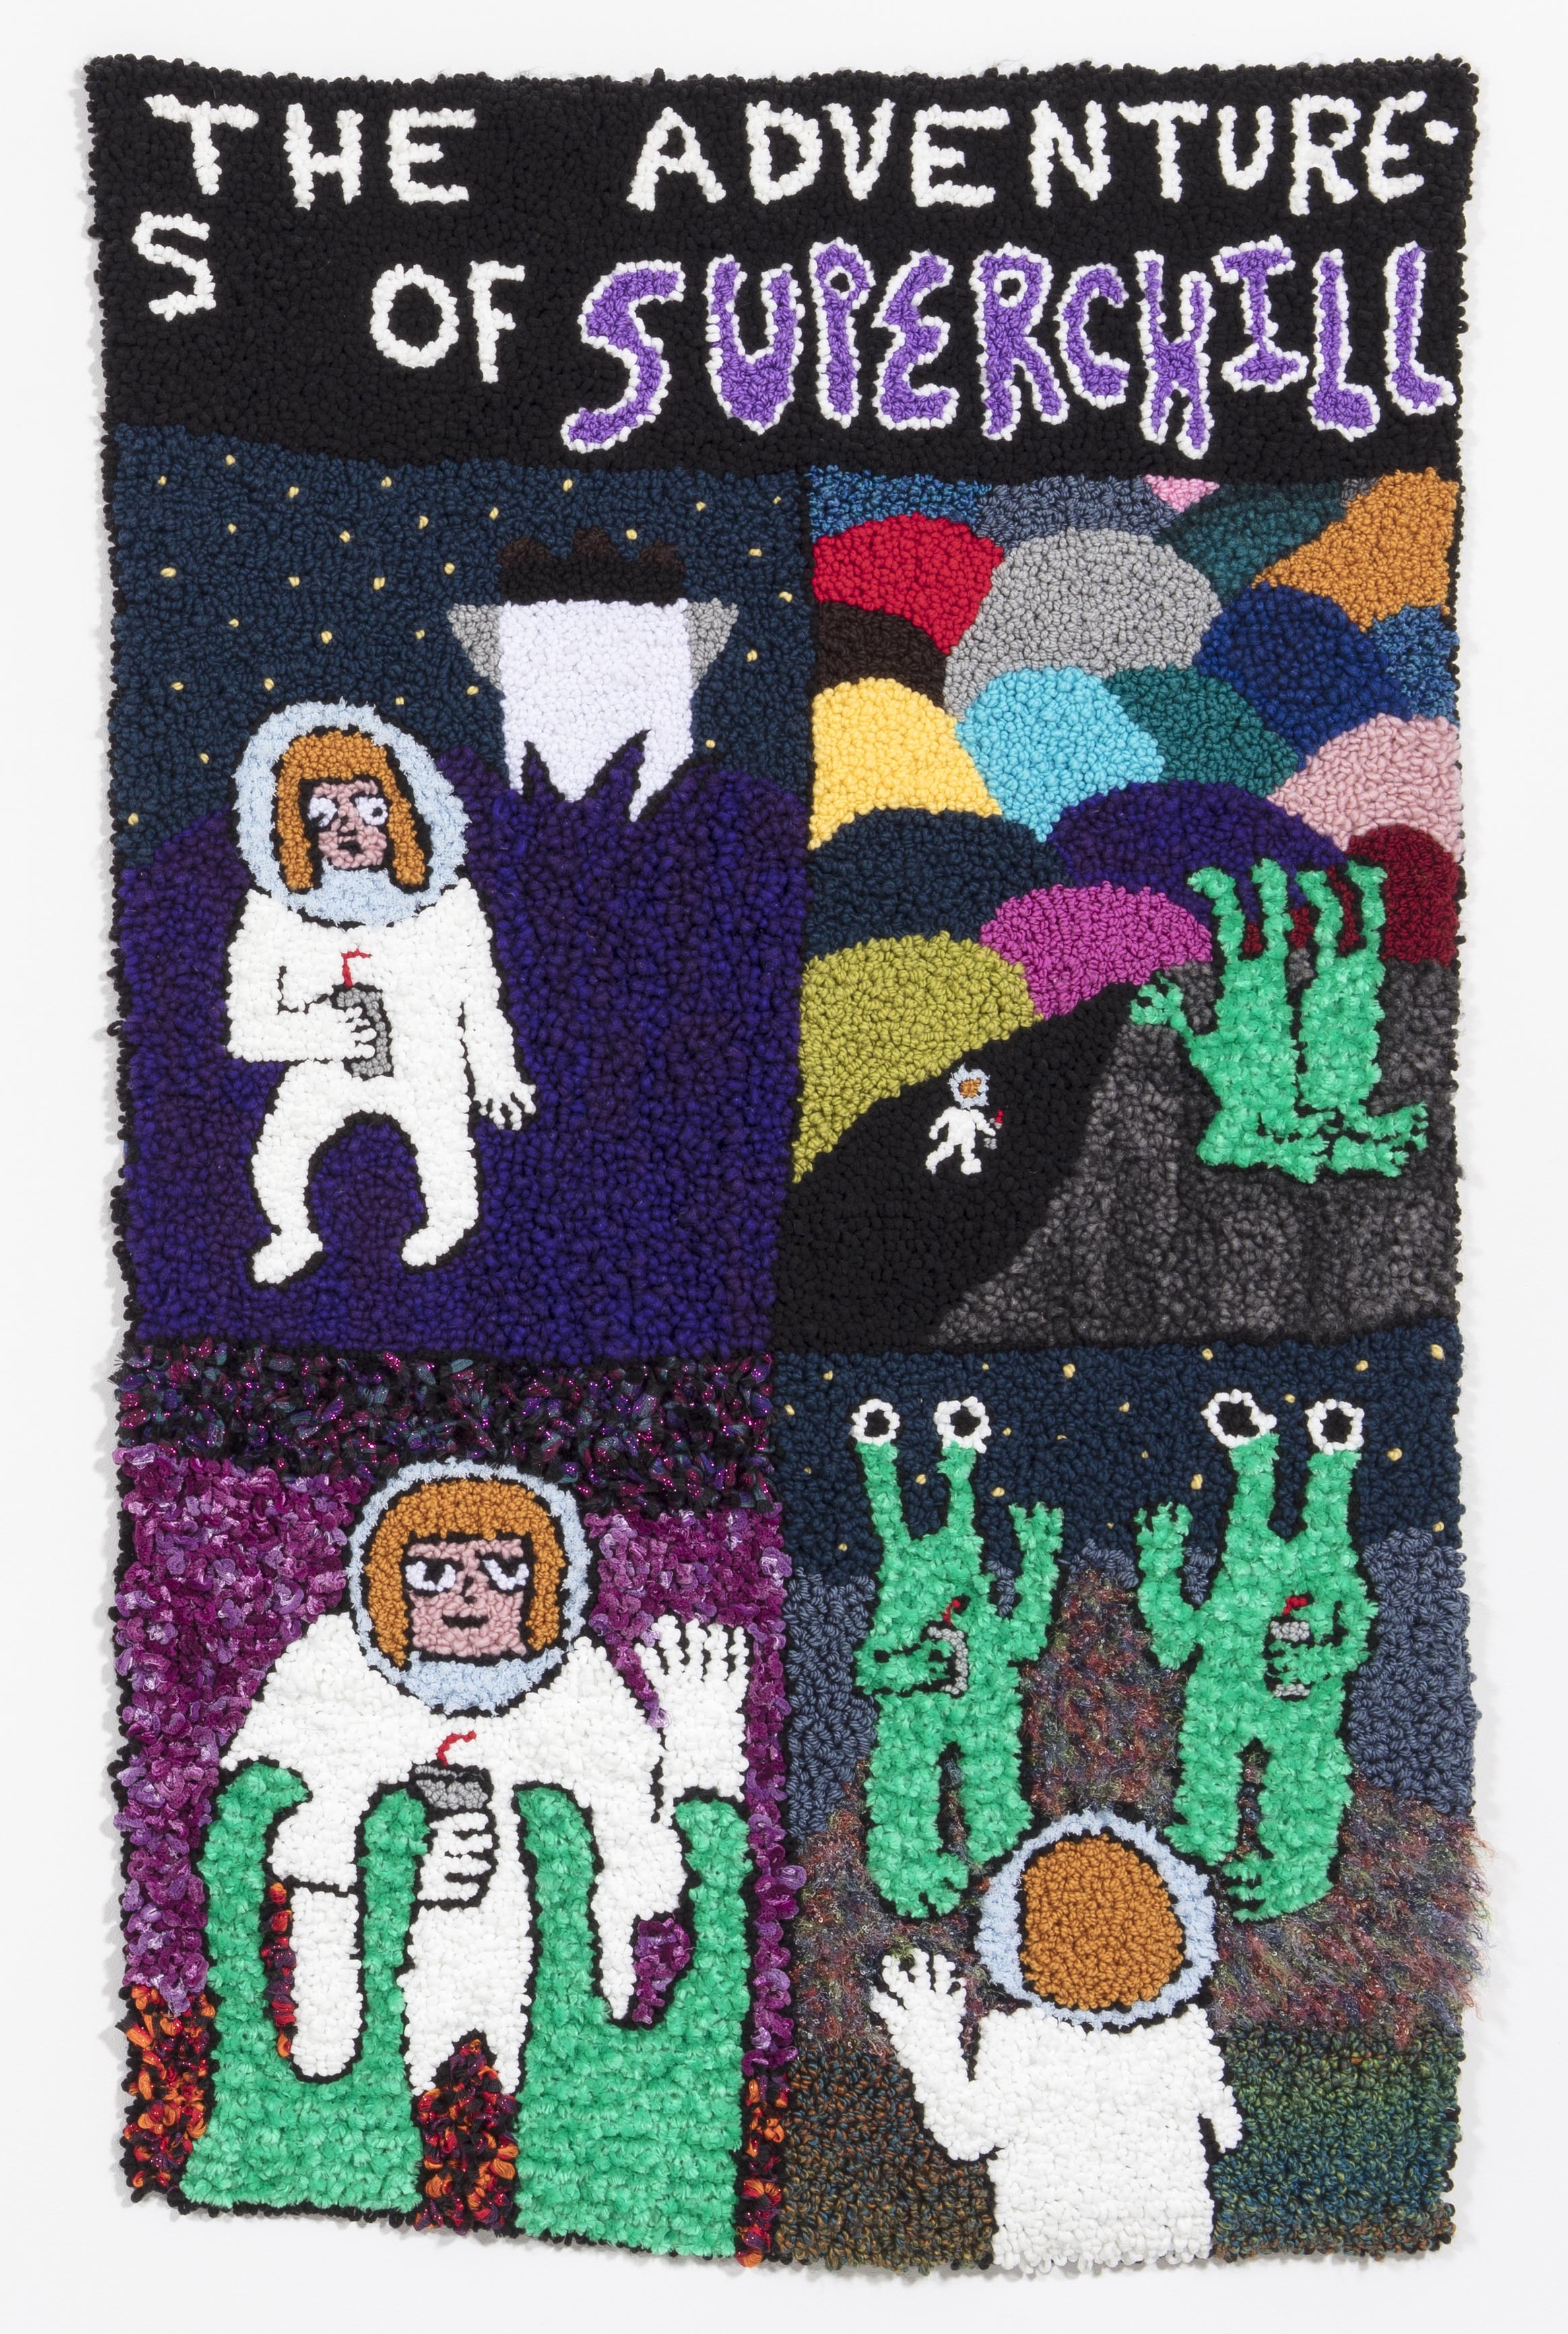 Hannah Epstein. <em>Superchill (DYWAFTTOS?) Episode 2</em>, 2018. Acrylic, wool, polyester and burlap, 69 x 44 inches (175.3 x 111.8 cm)